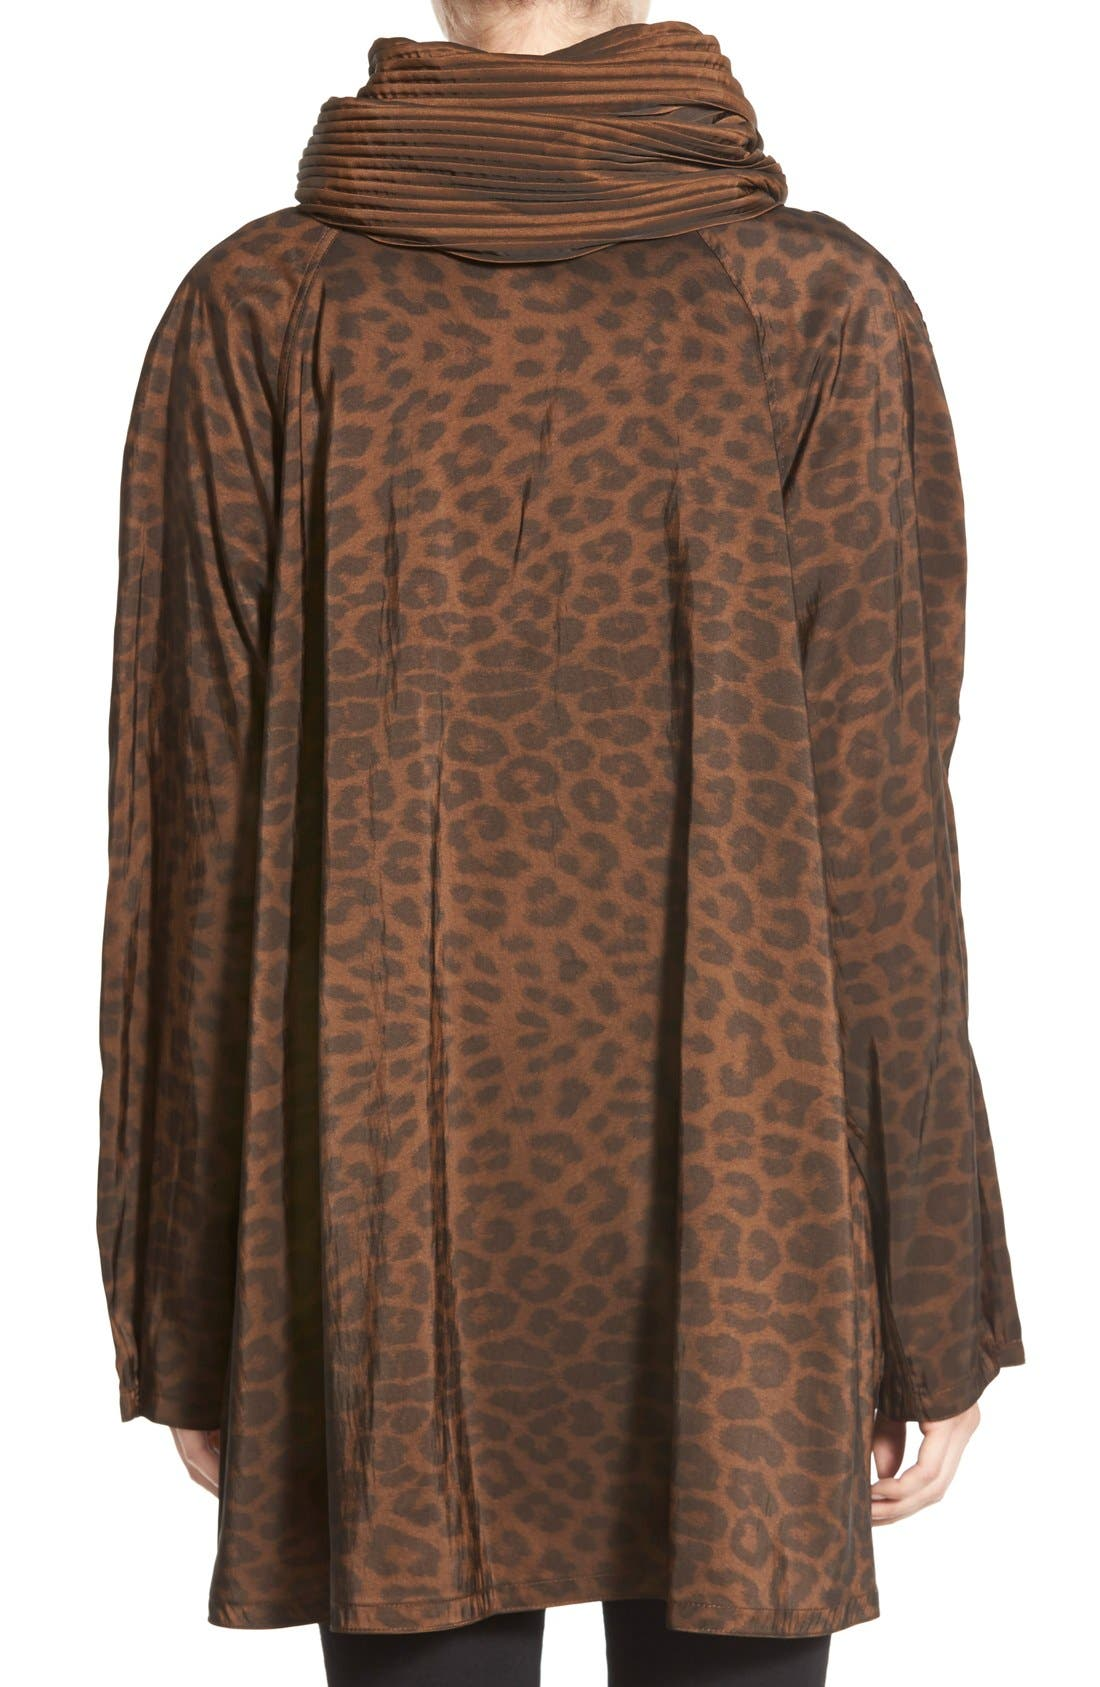 'Mini Donatella Leopard' Reversible Pleat Hood Packable Travel Coat,                             Alternate thumbnail 10, color,                             202